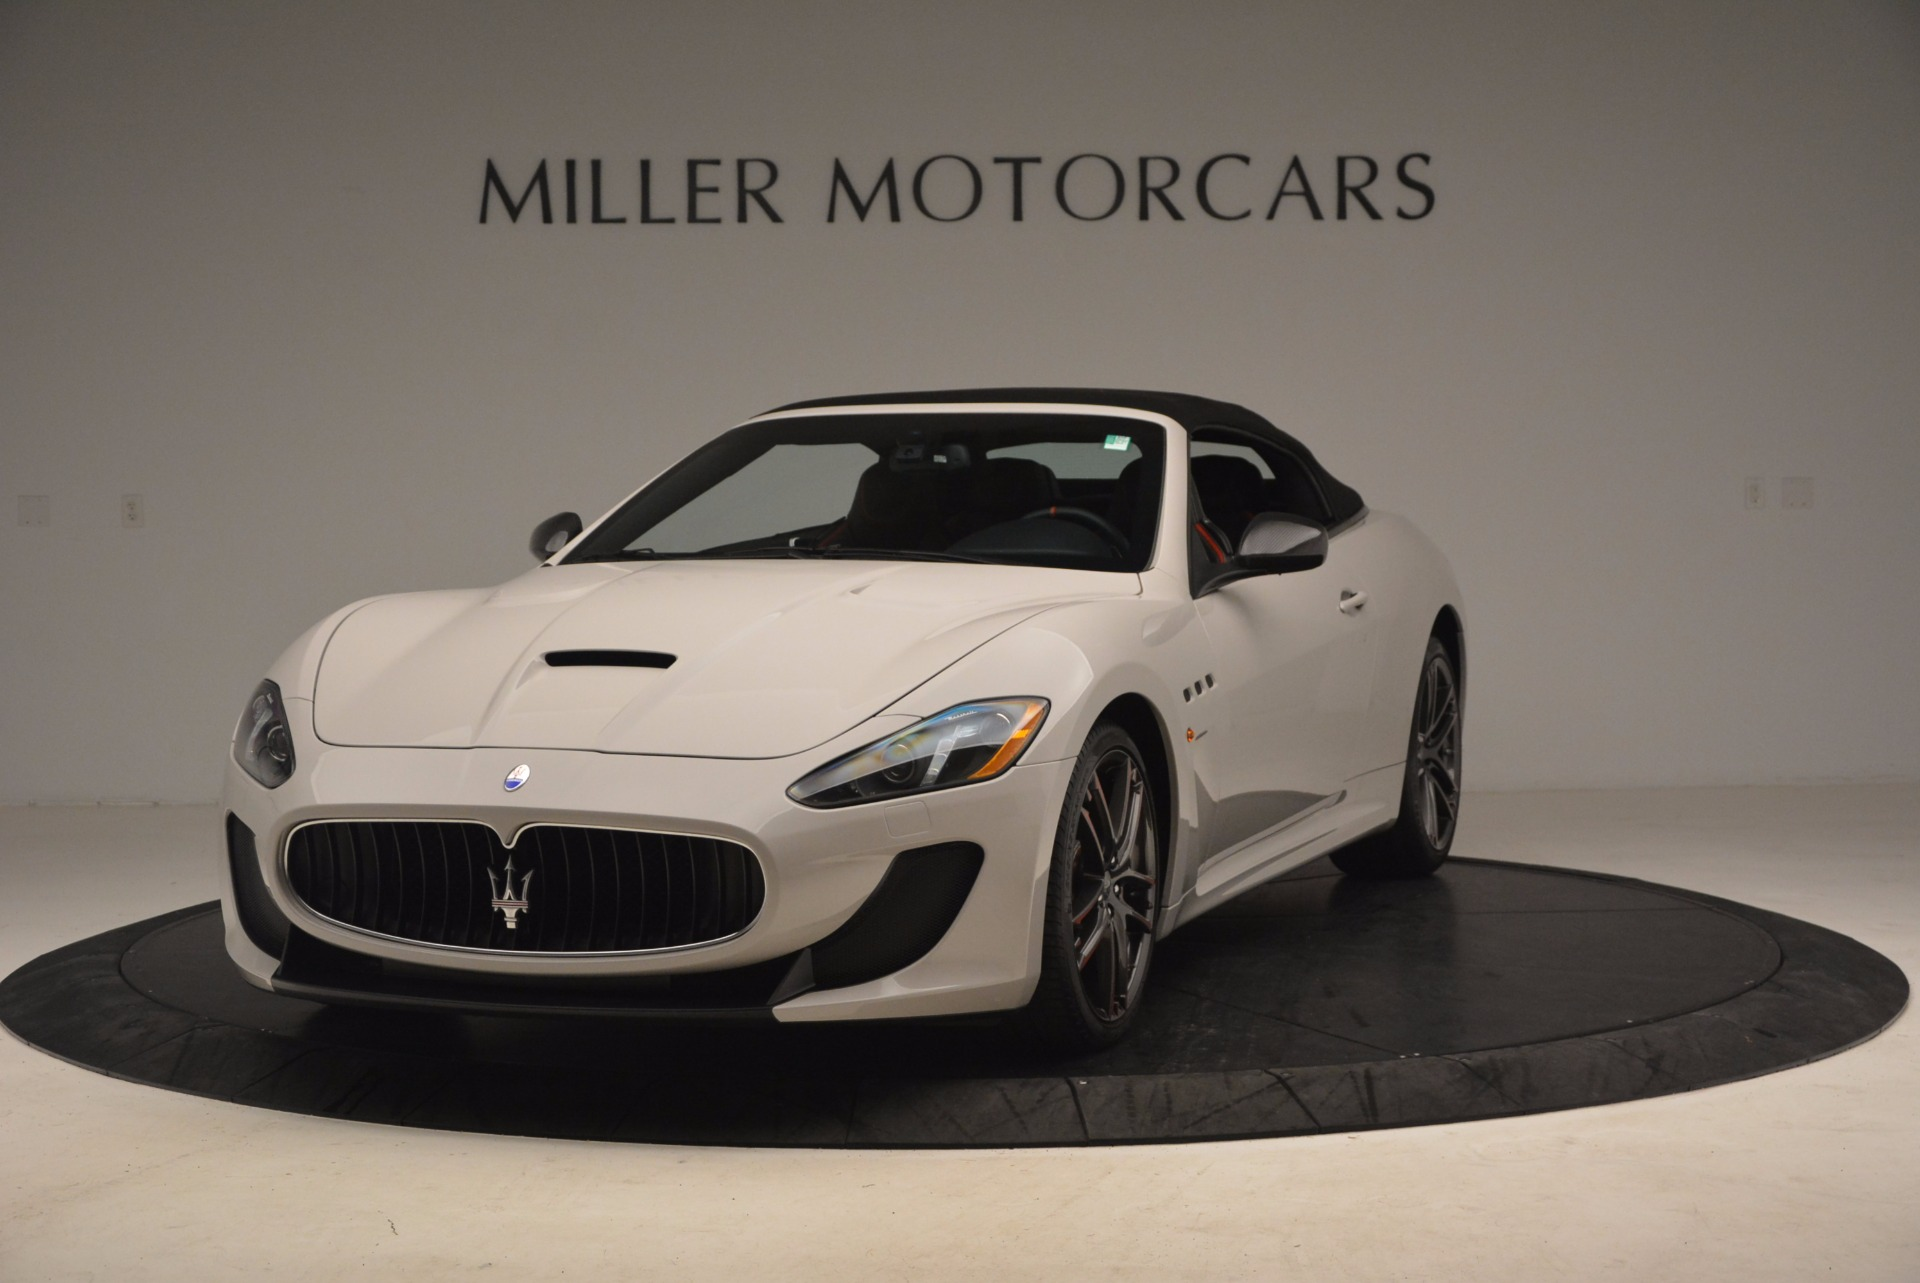 Used 2015 Maserati GranTurismo MC Centennial For Sale In Westport, CT 1107_p13